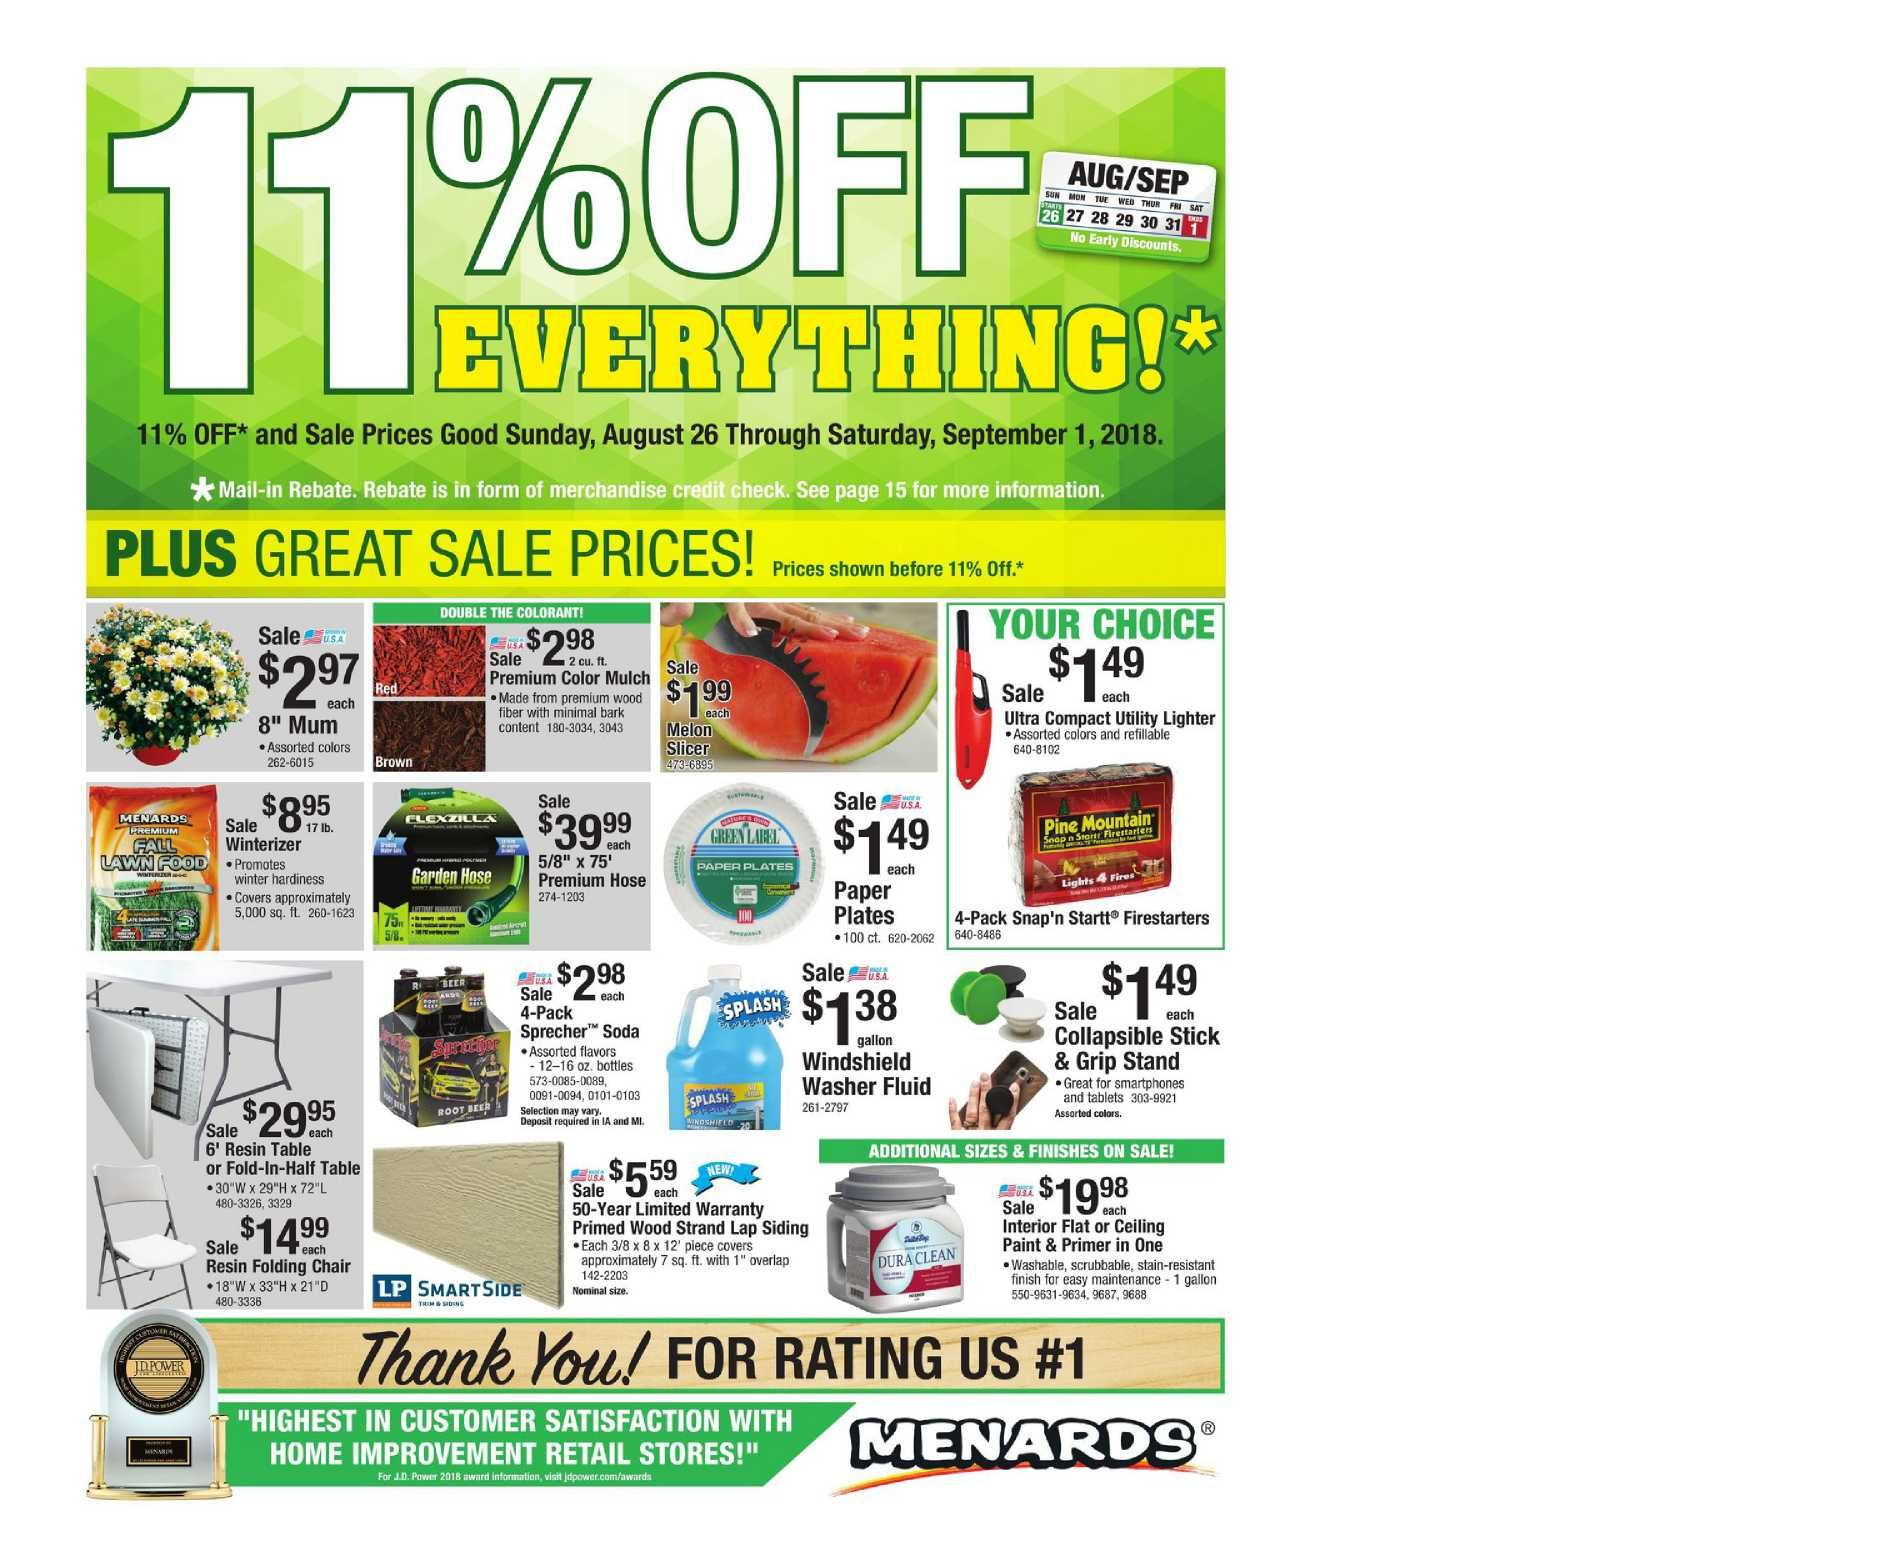 Treat yourself to huge savings with Menards Coupons: 15 deals for February 12222.